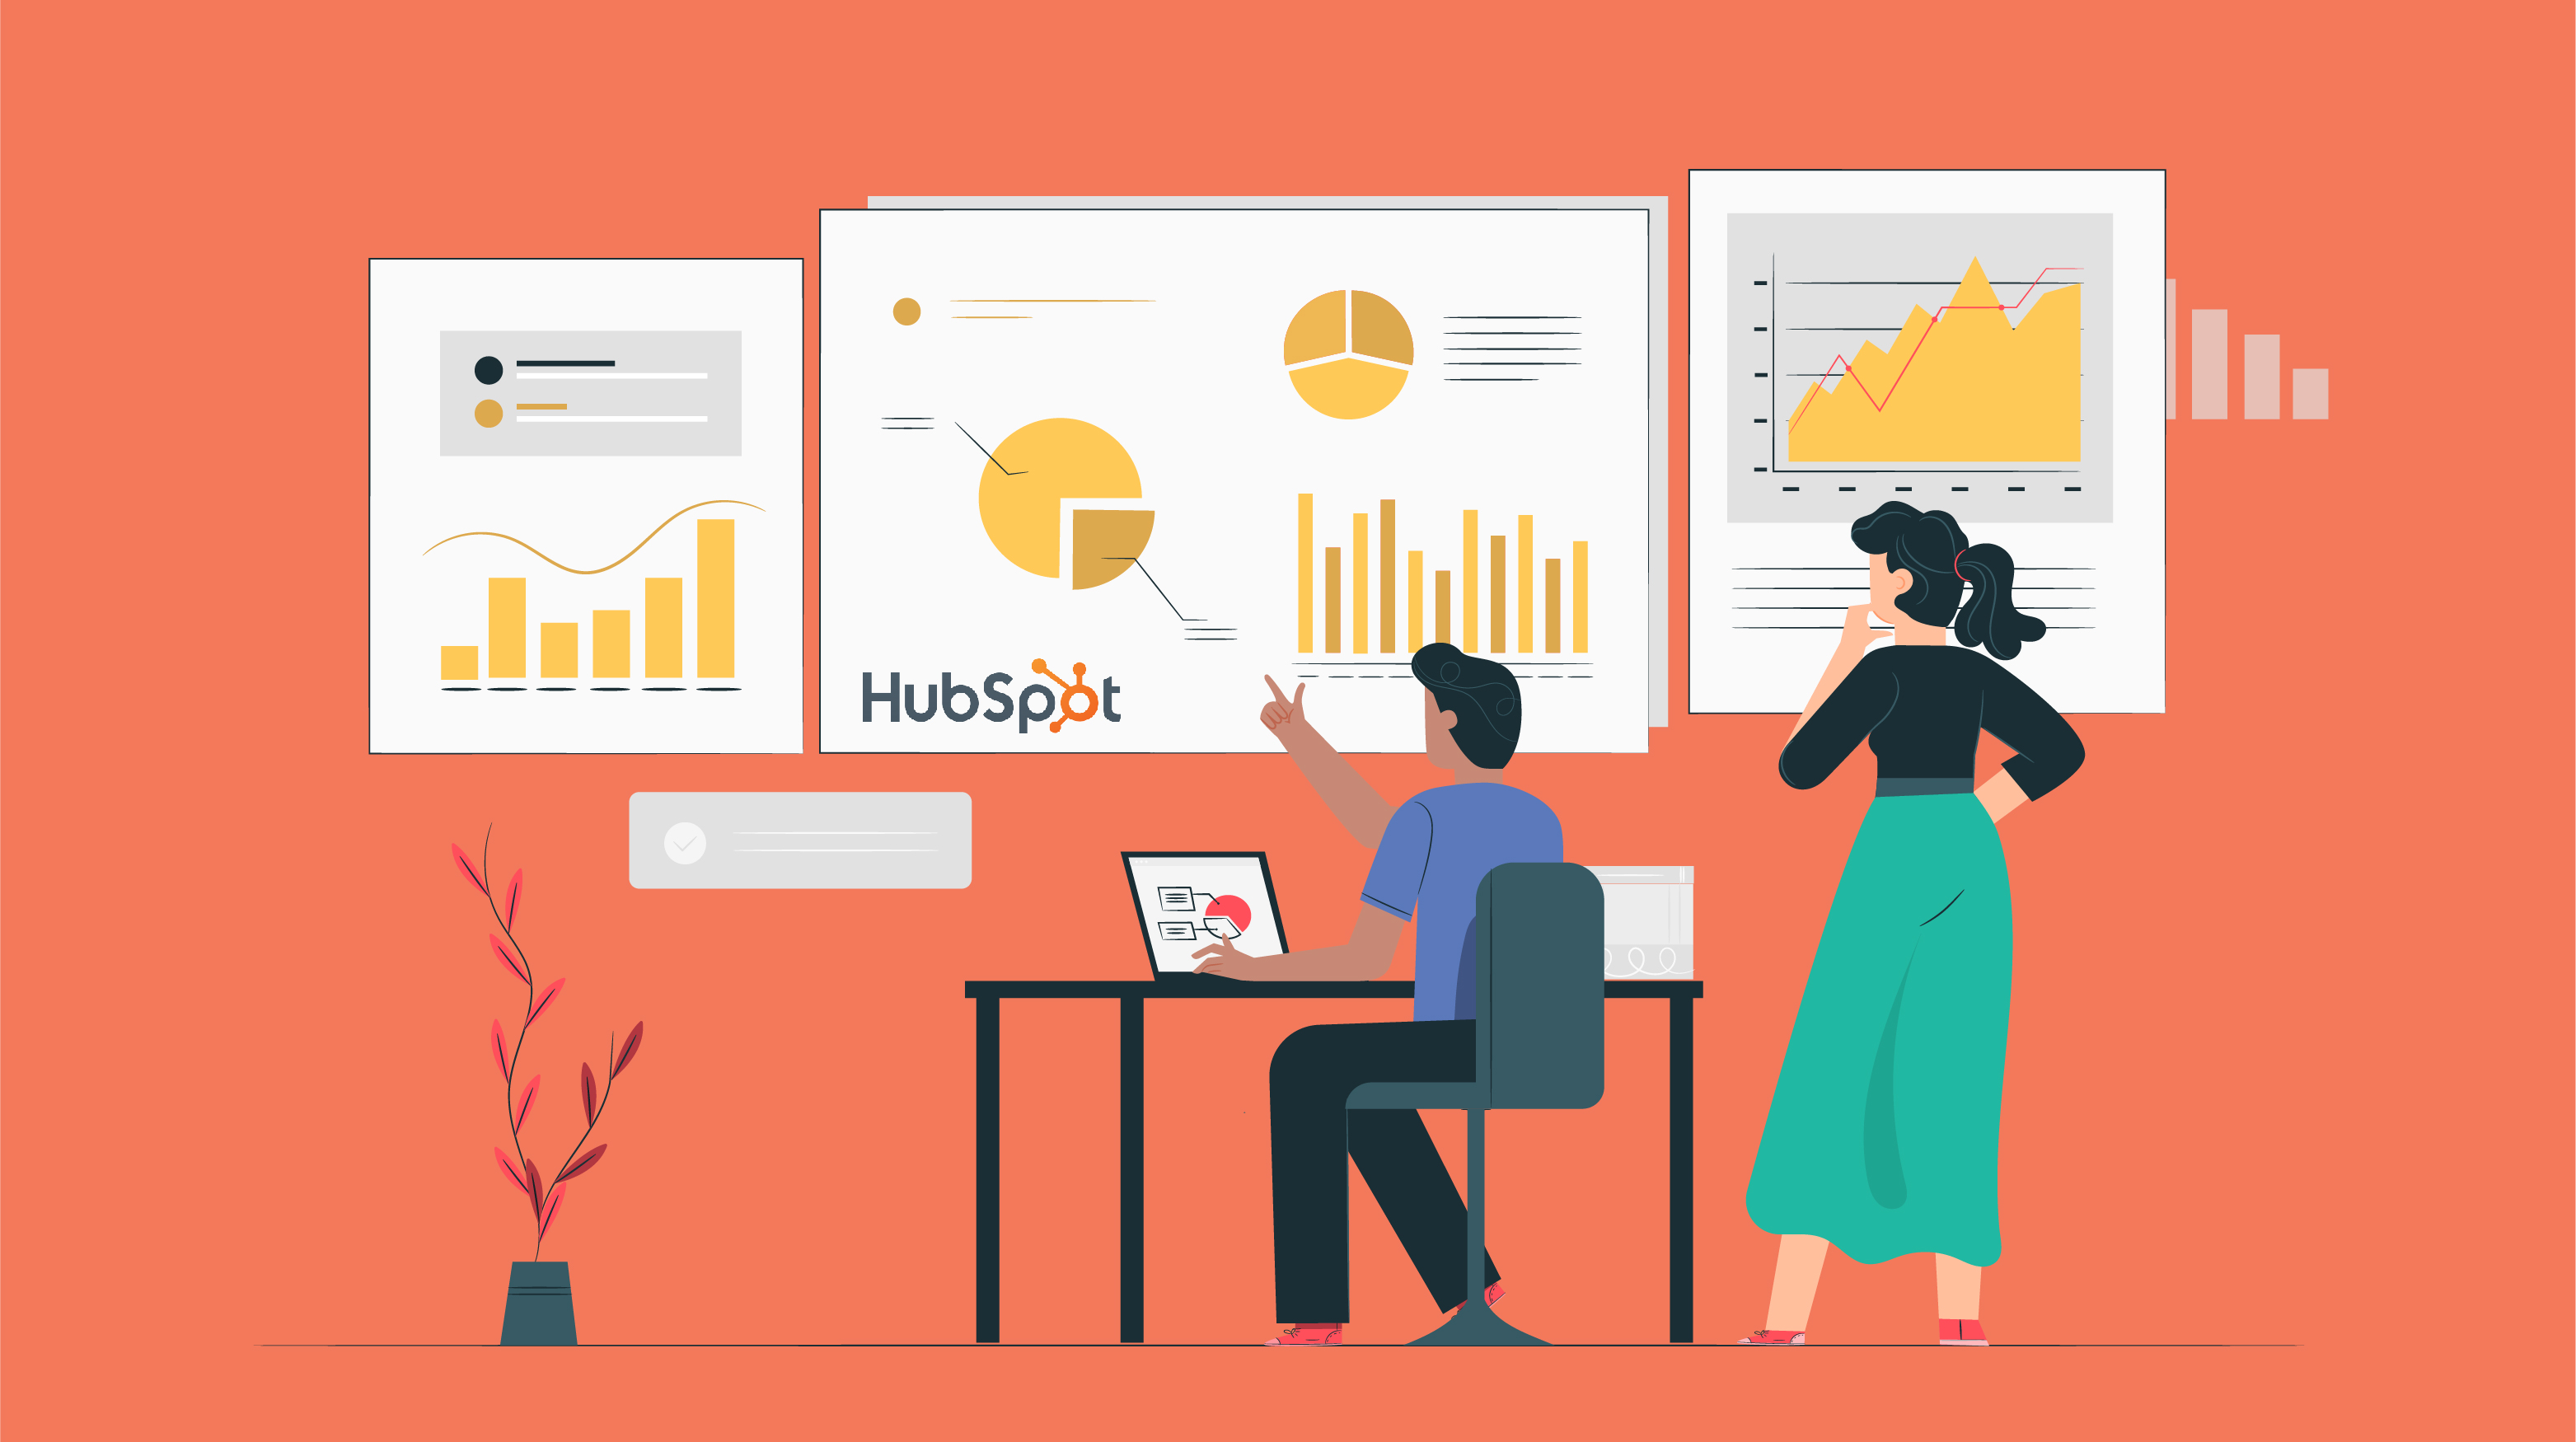 50 HubSpot Marketing Statistics You Need to Know